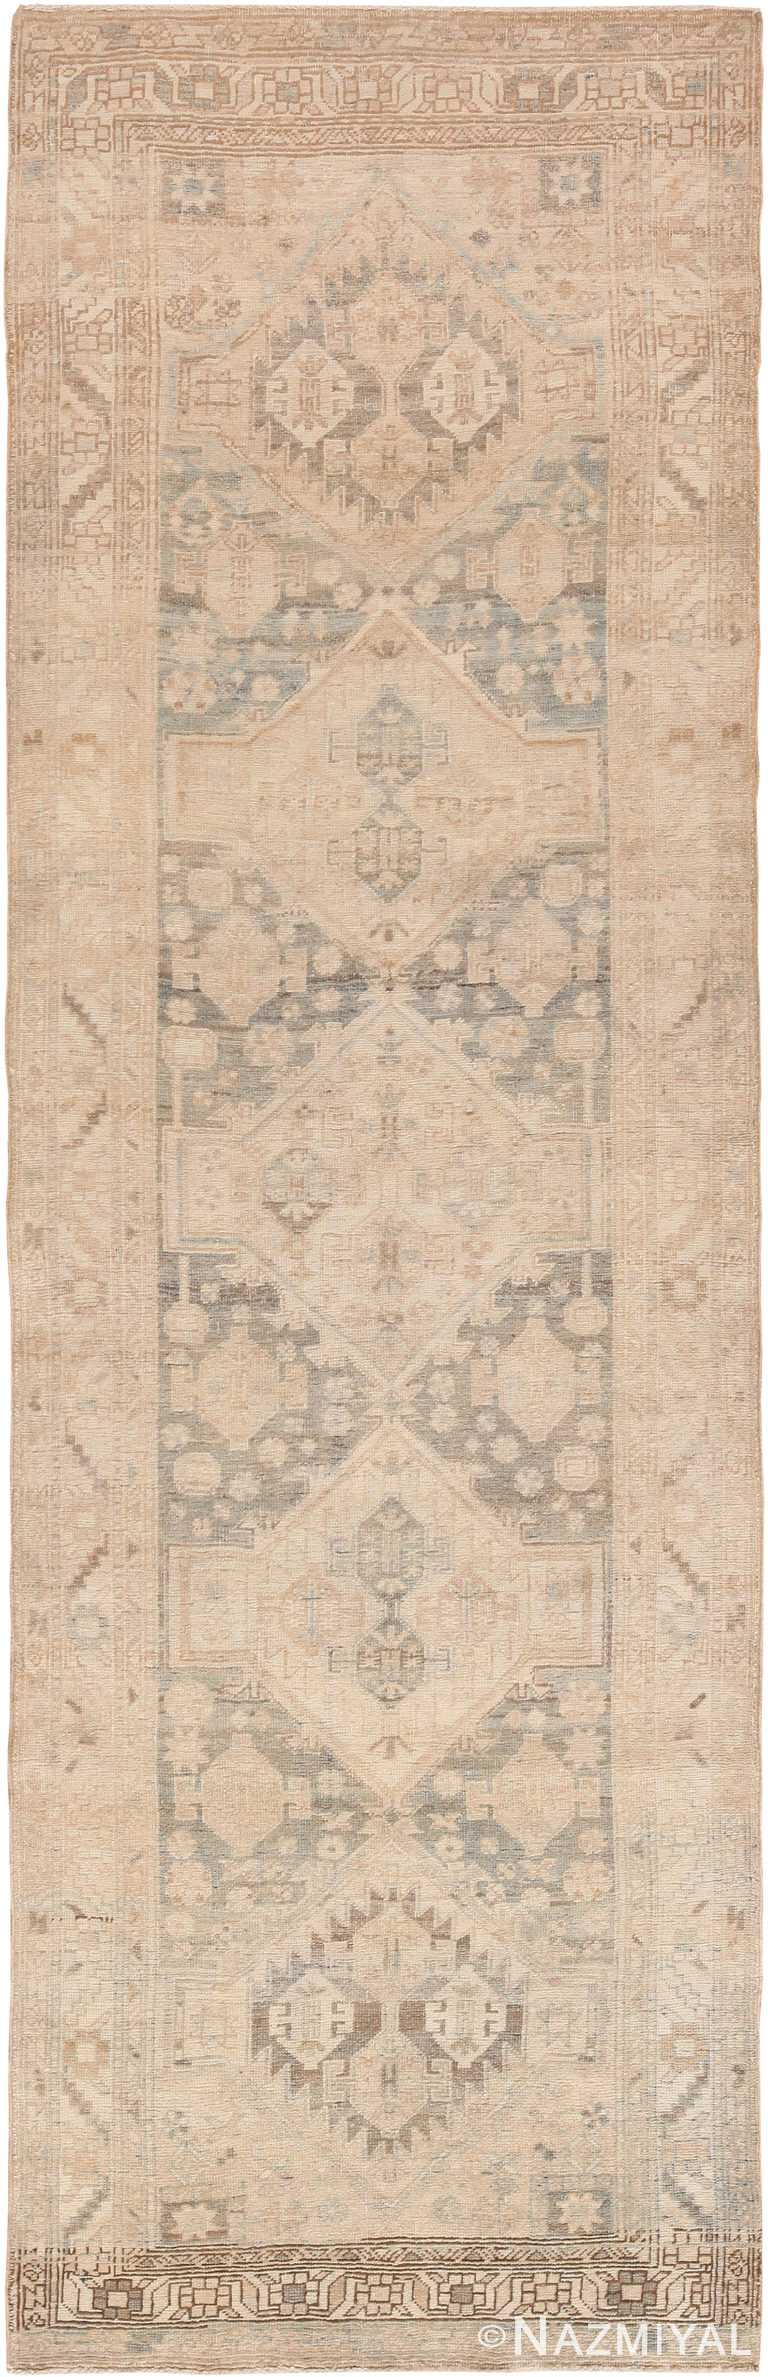 Cream Antique Persian Bidjar Runner Rug 60528 by Nazmiyal Antique Rugs